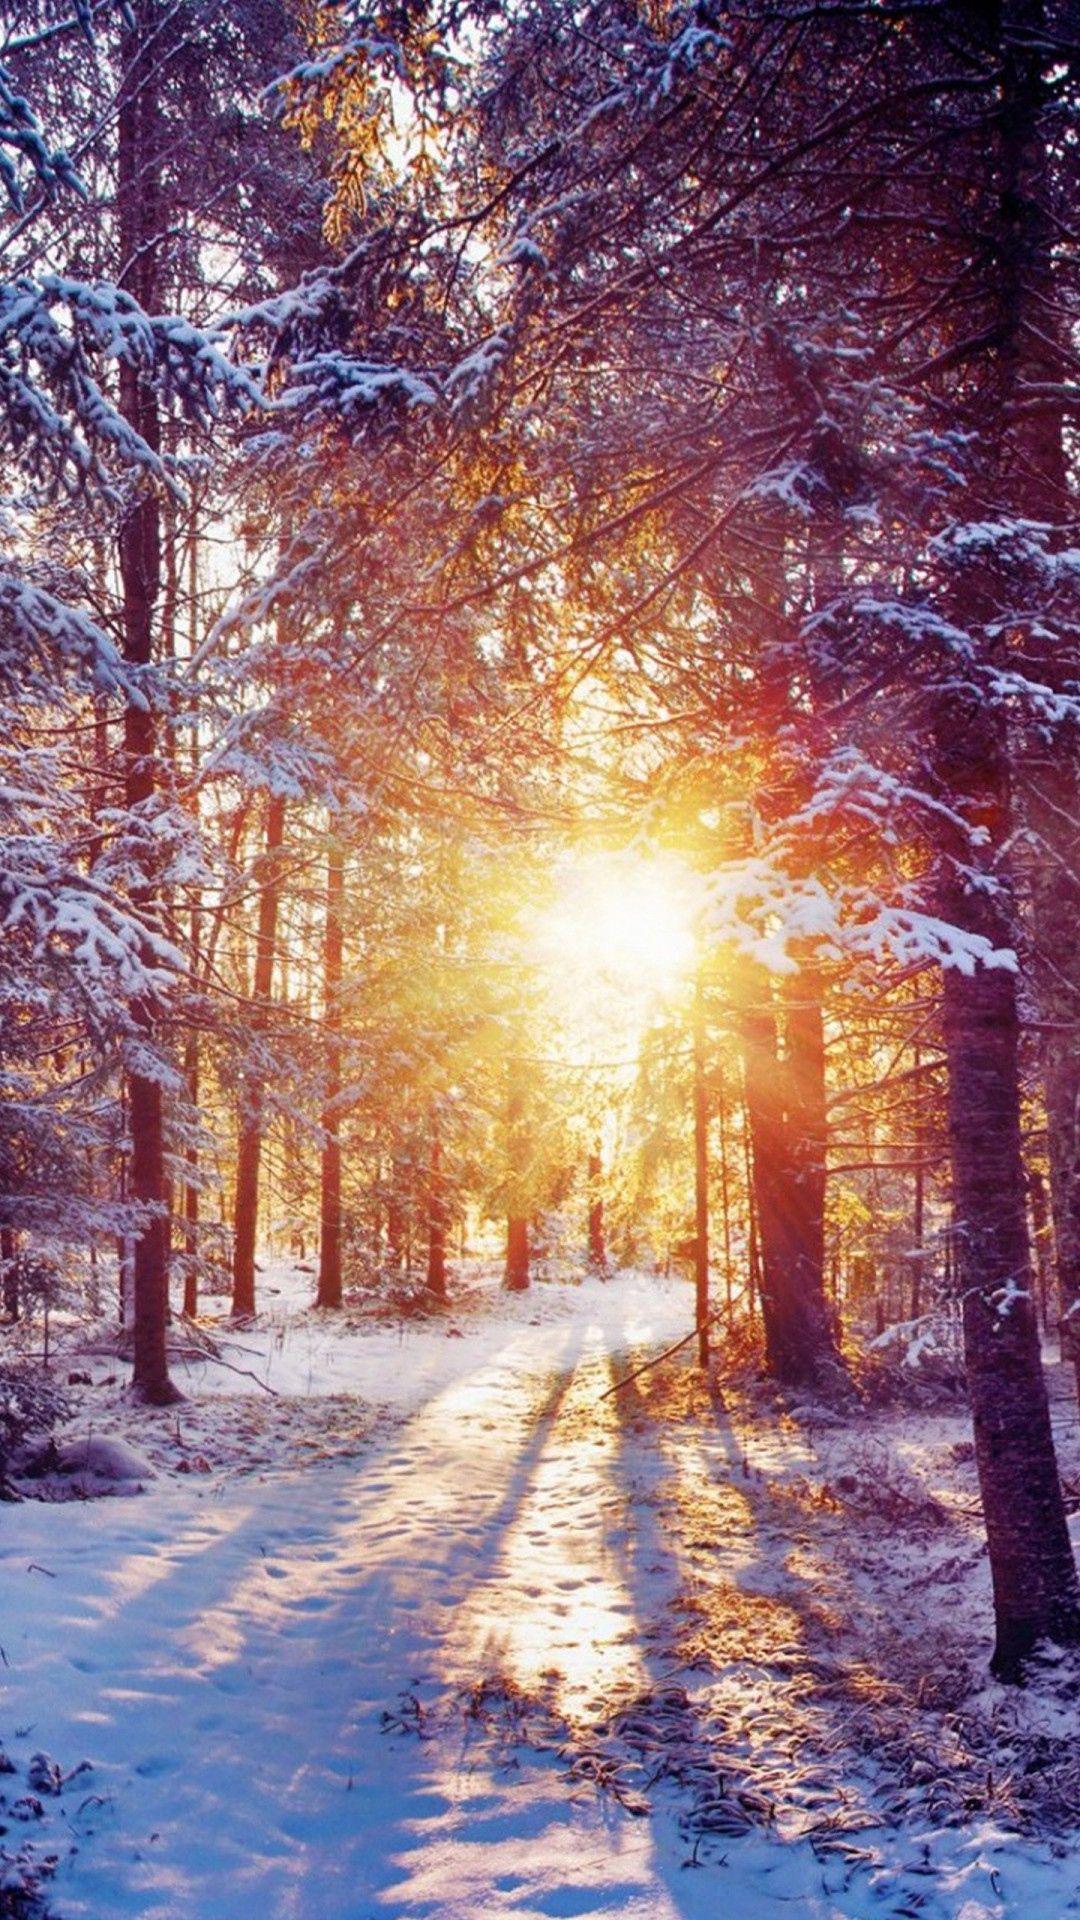 Winter hd wallpapers for iphone 7 wallpapers winter background wallpaper 20161021195217 voltagebd Gallery